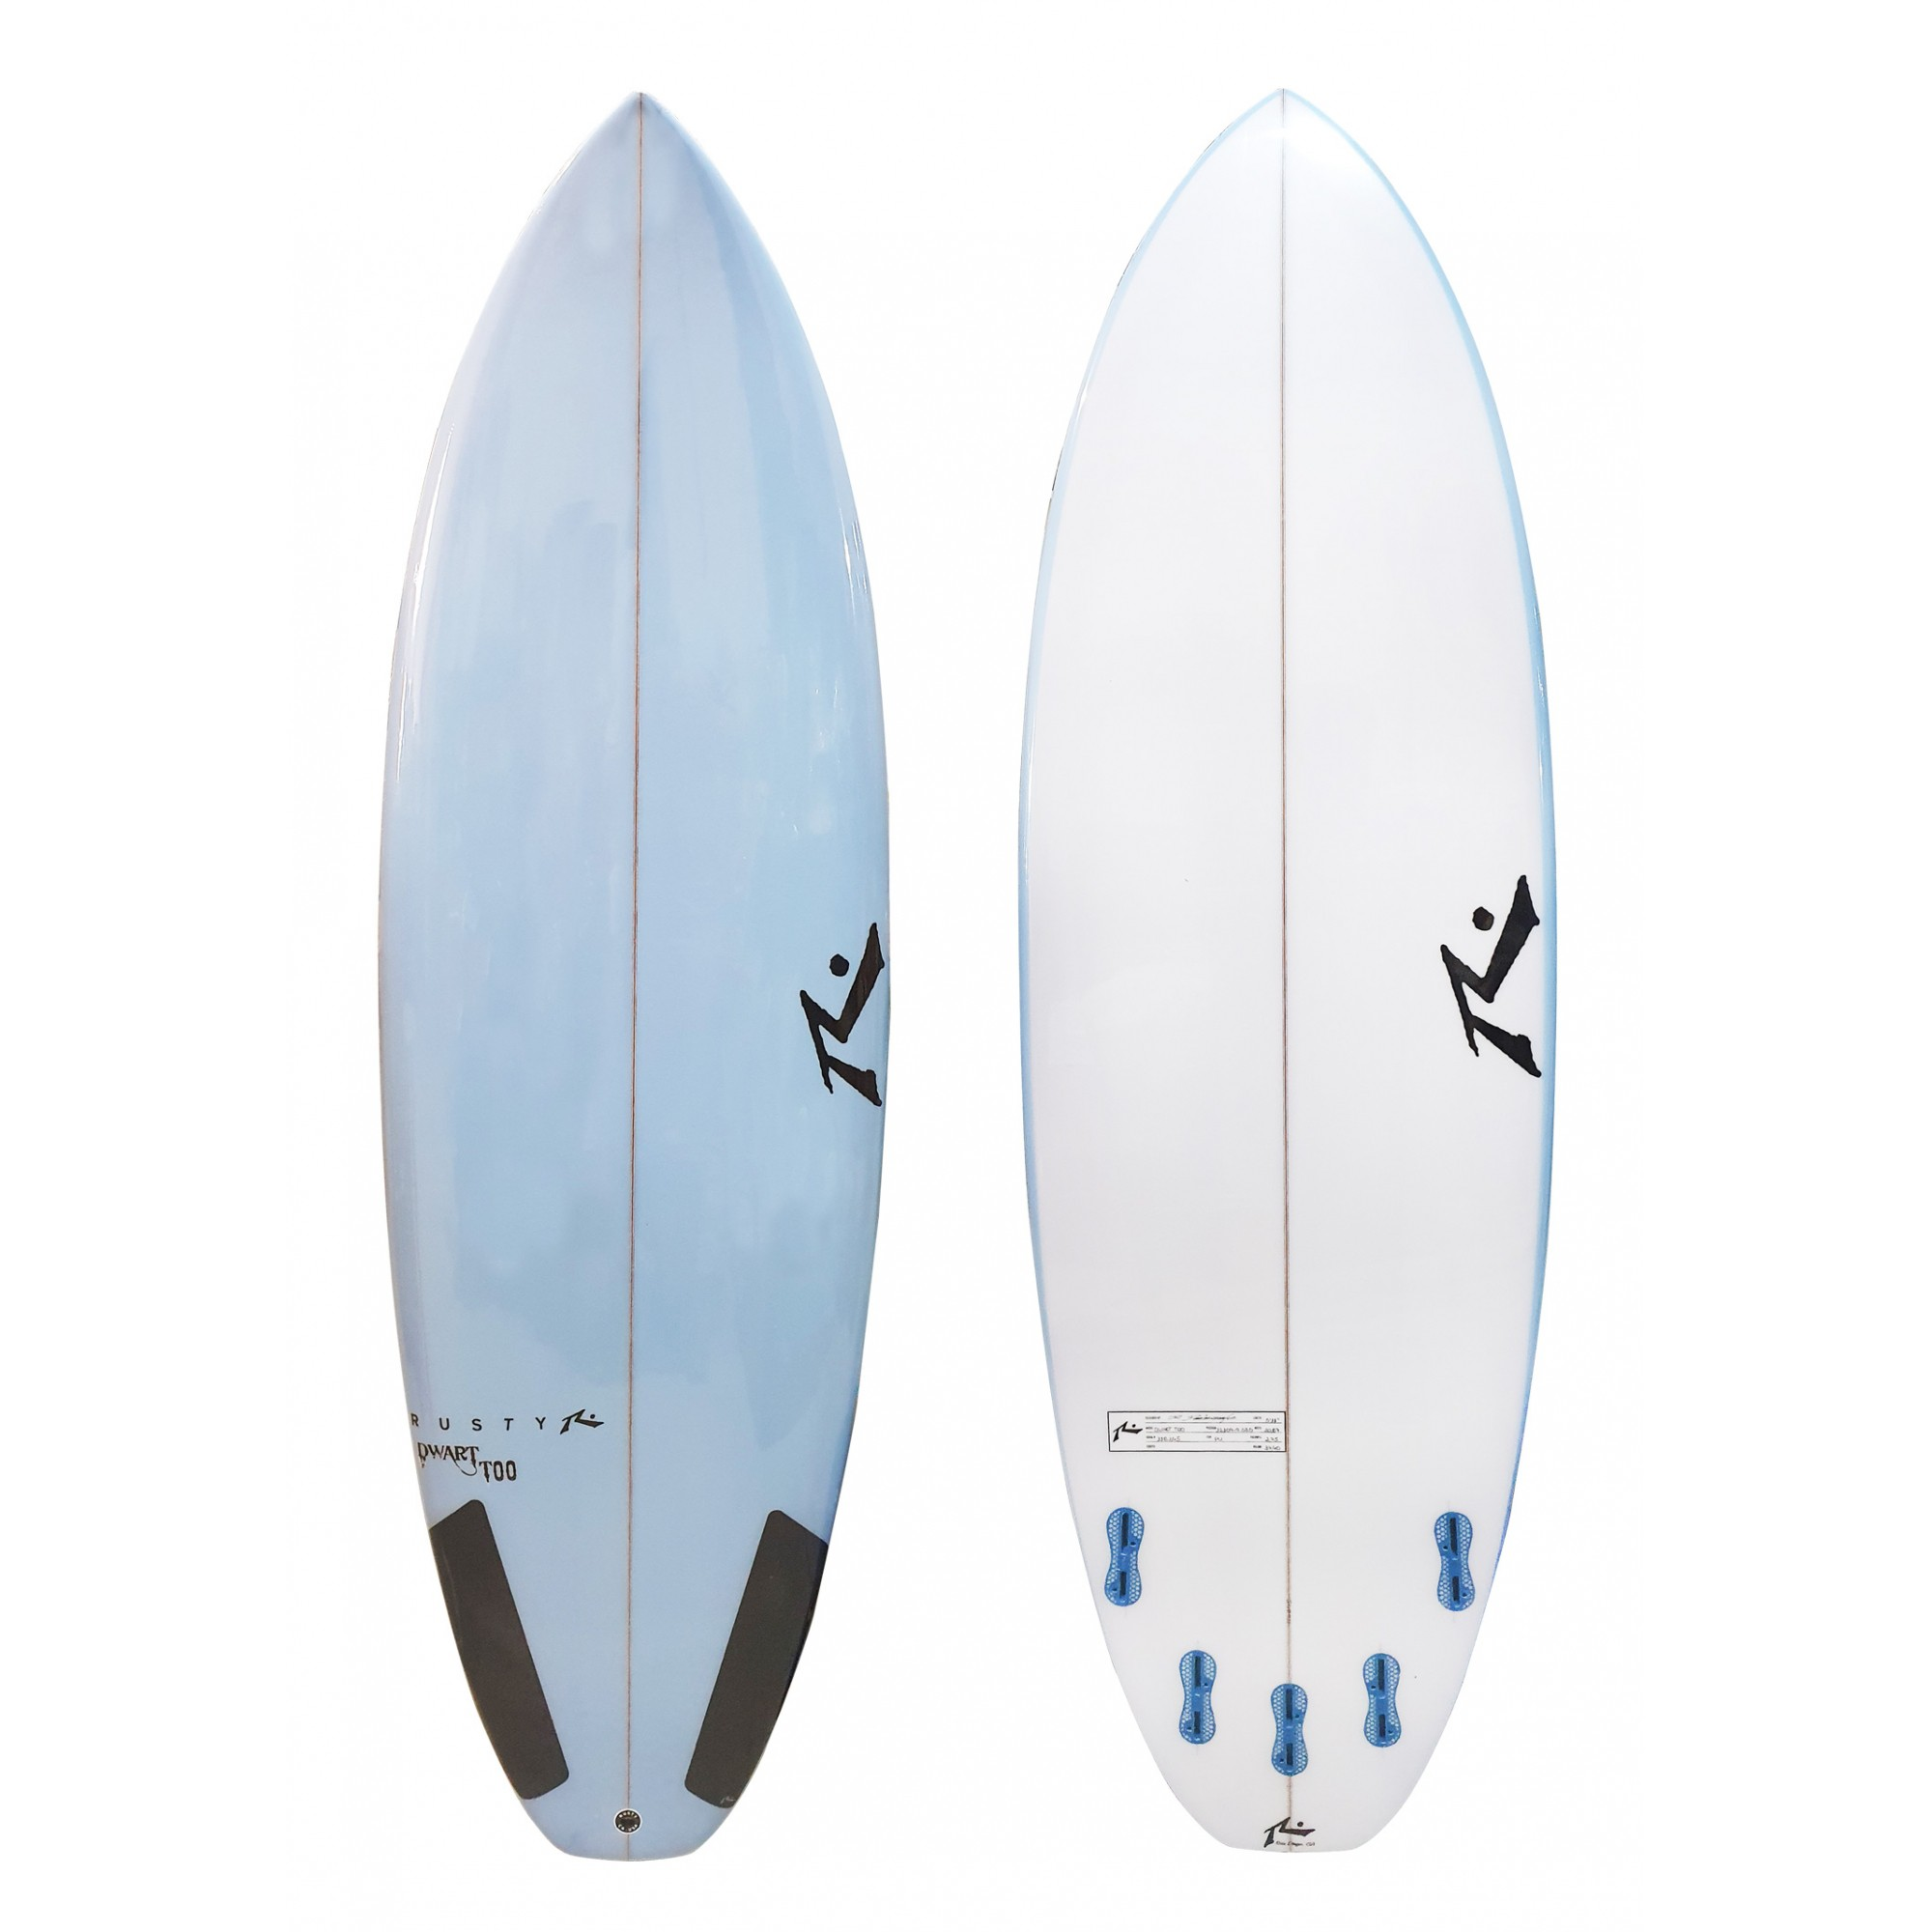 Rusty 5'11'' Dwart Too FCS II